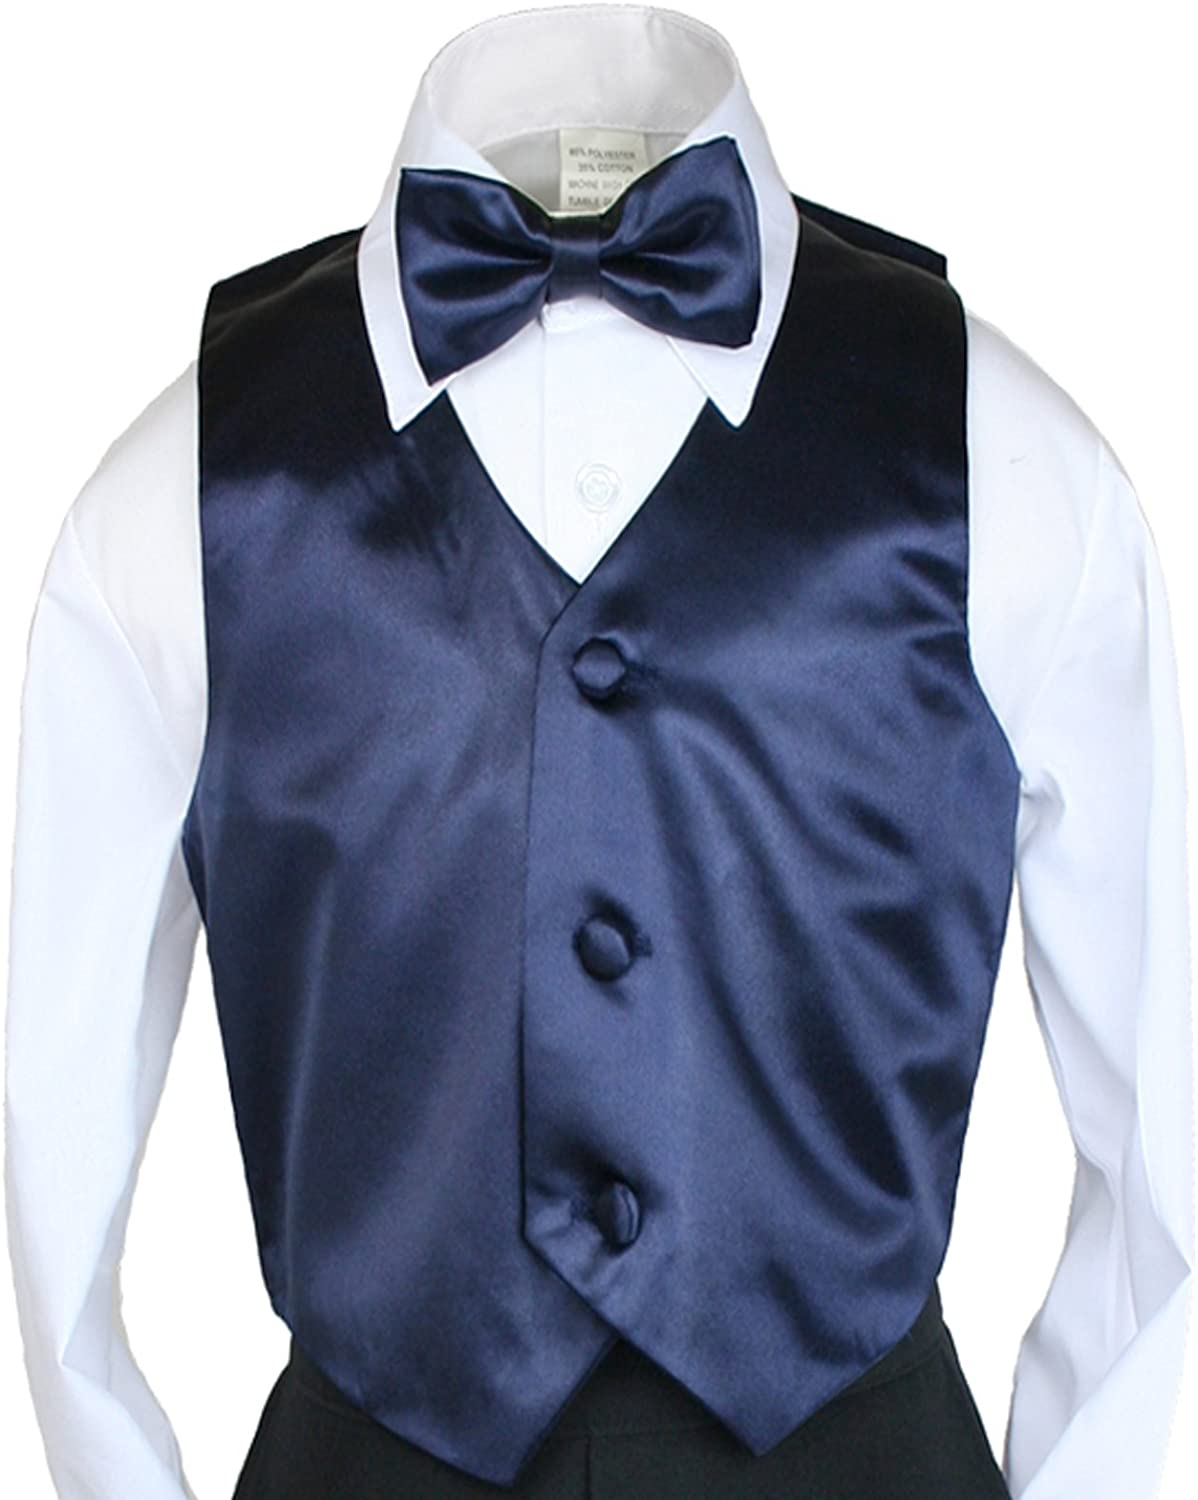 New 2pc Boys Satin Navy Vest and Bow tie Set from Baby to Teen